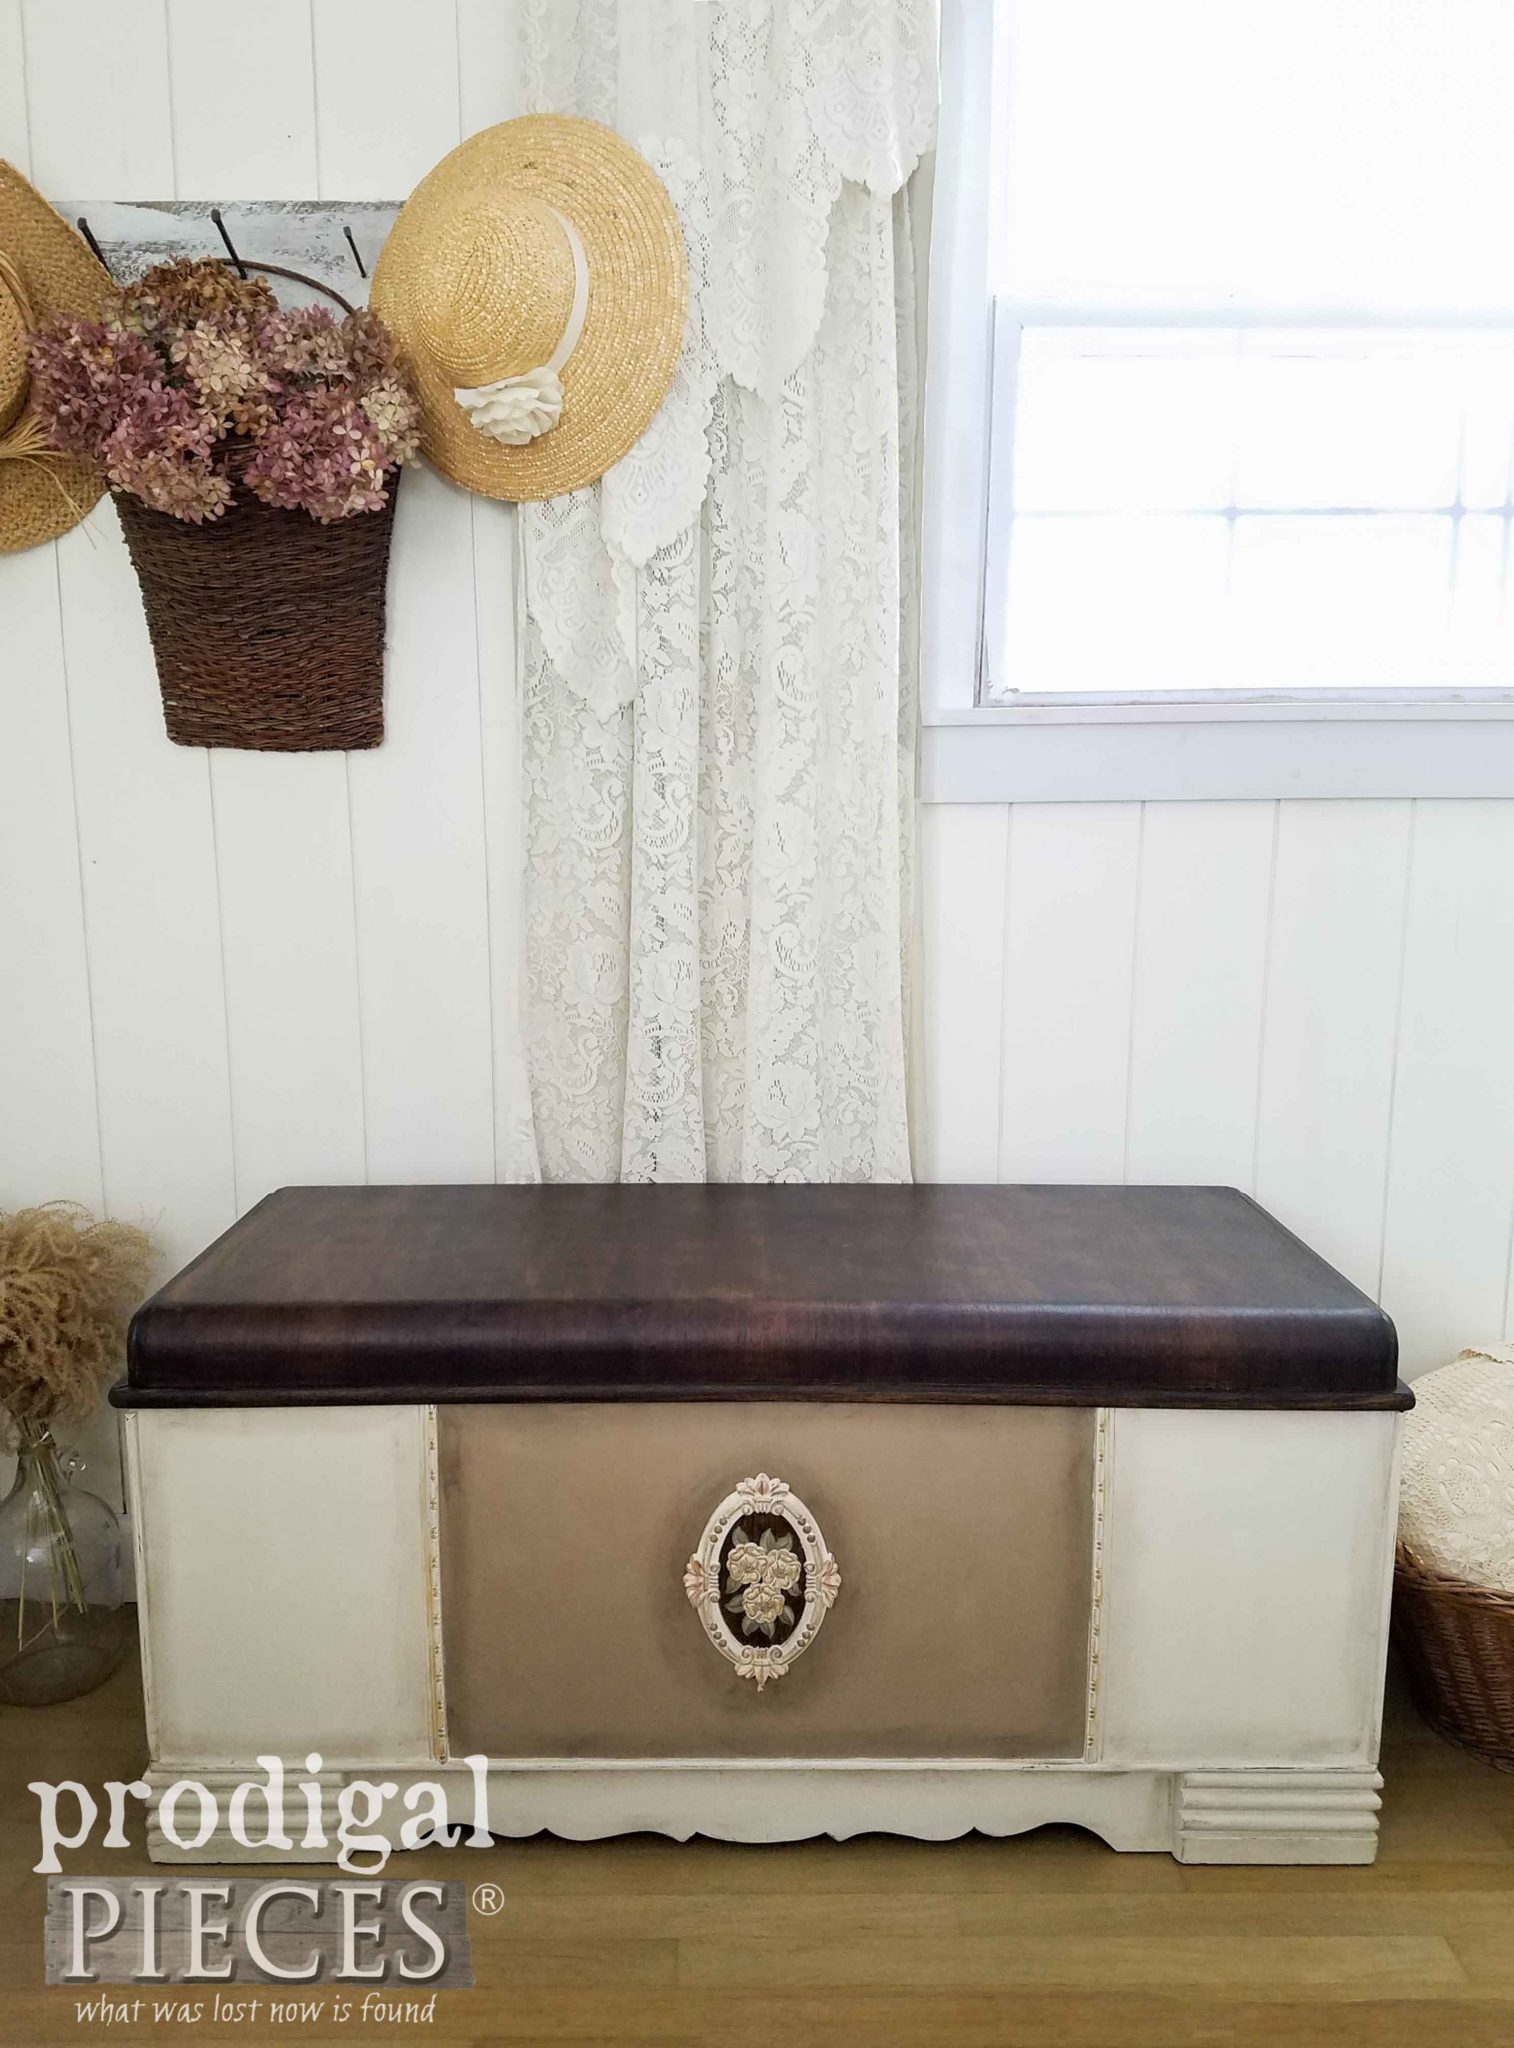 Art Deco Hope Chest Restored with Dixie Belle Paint Products by Larissa of Prodigal Pieces | prodigalpieces.com